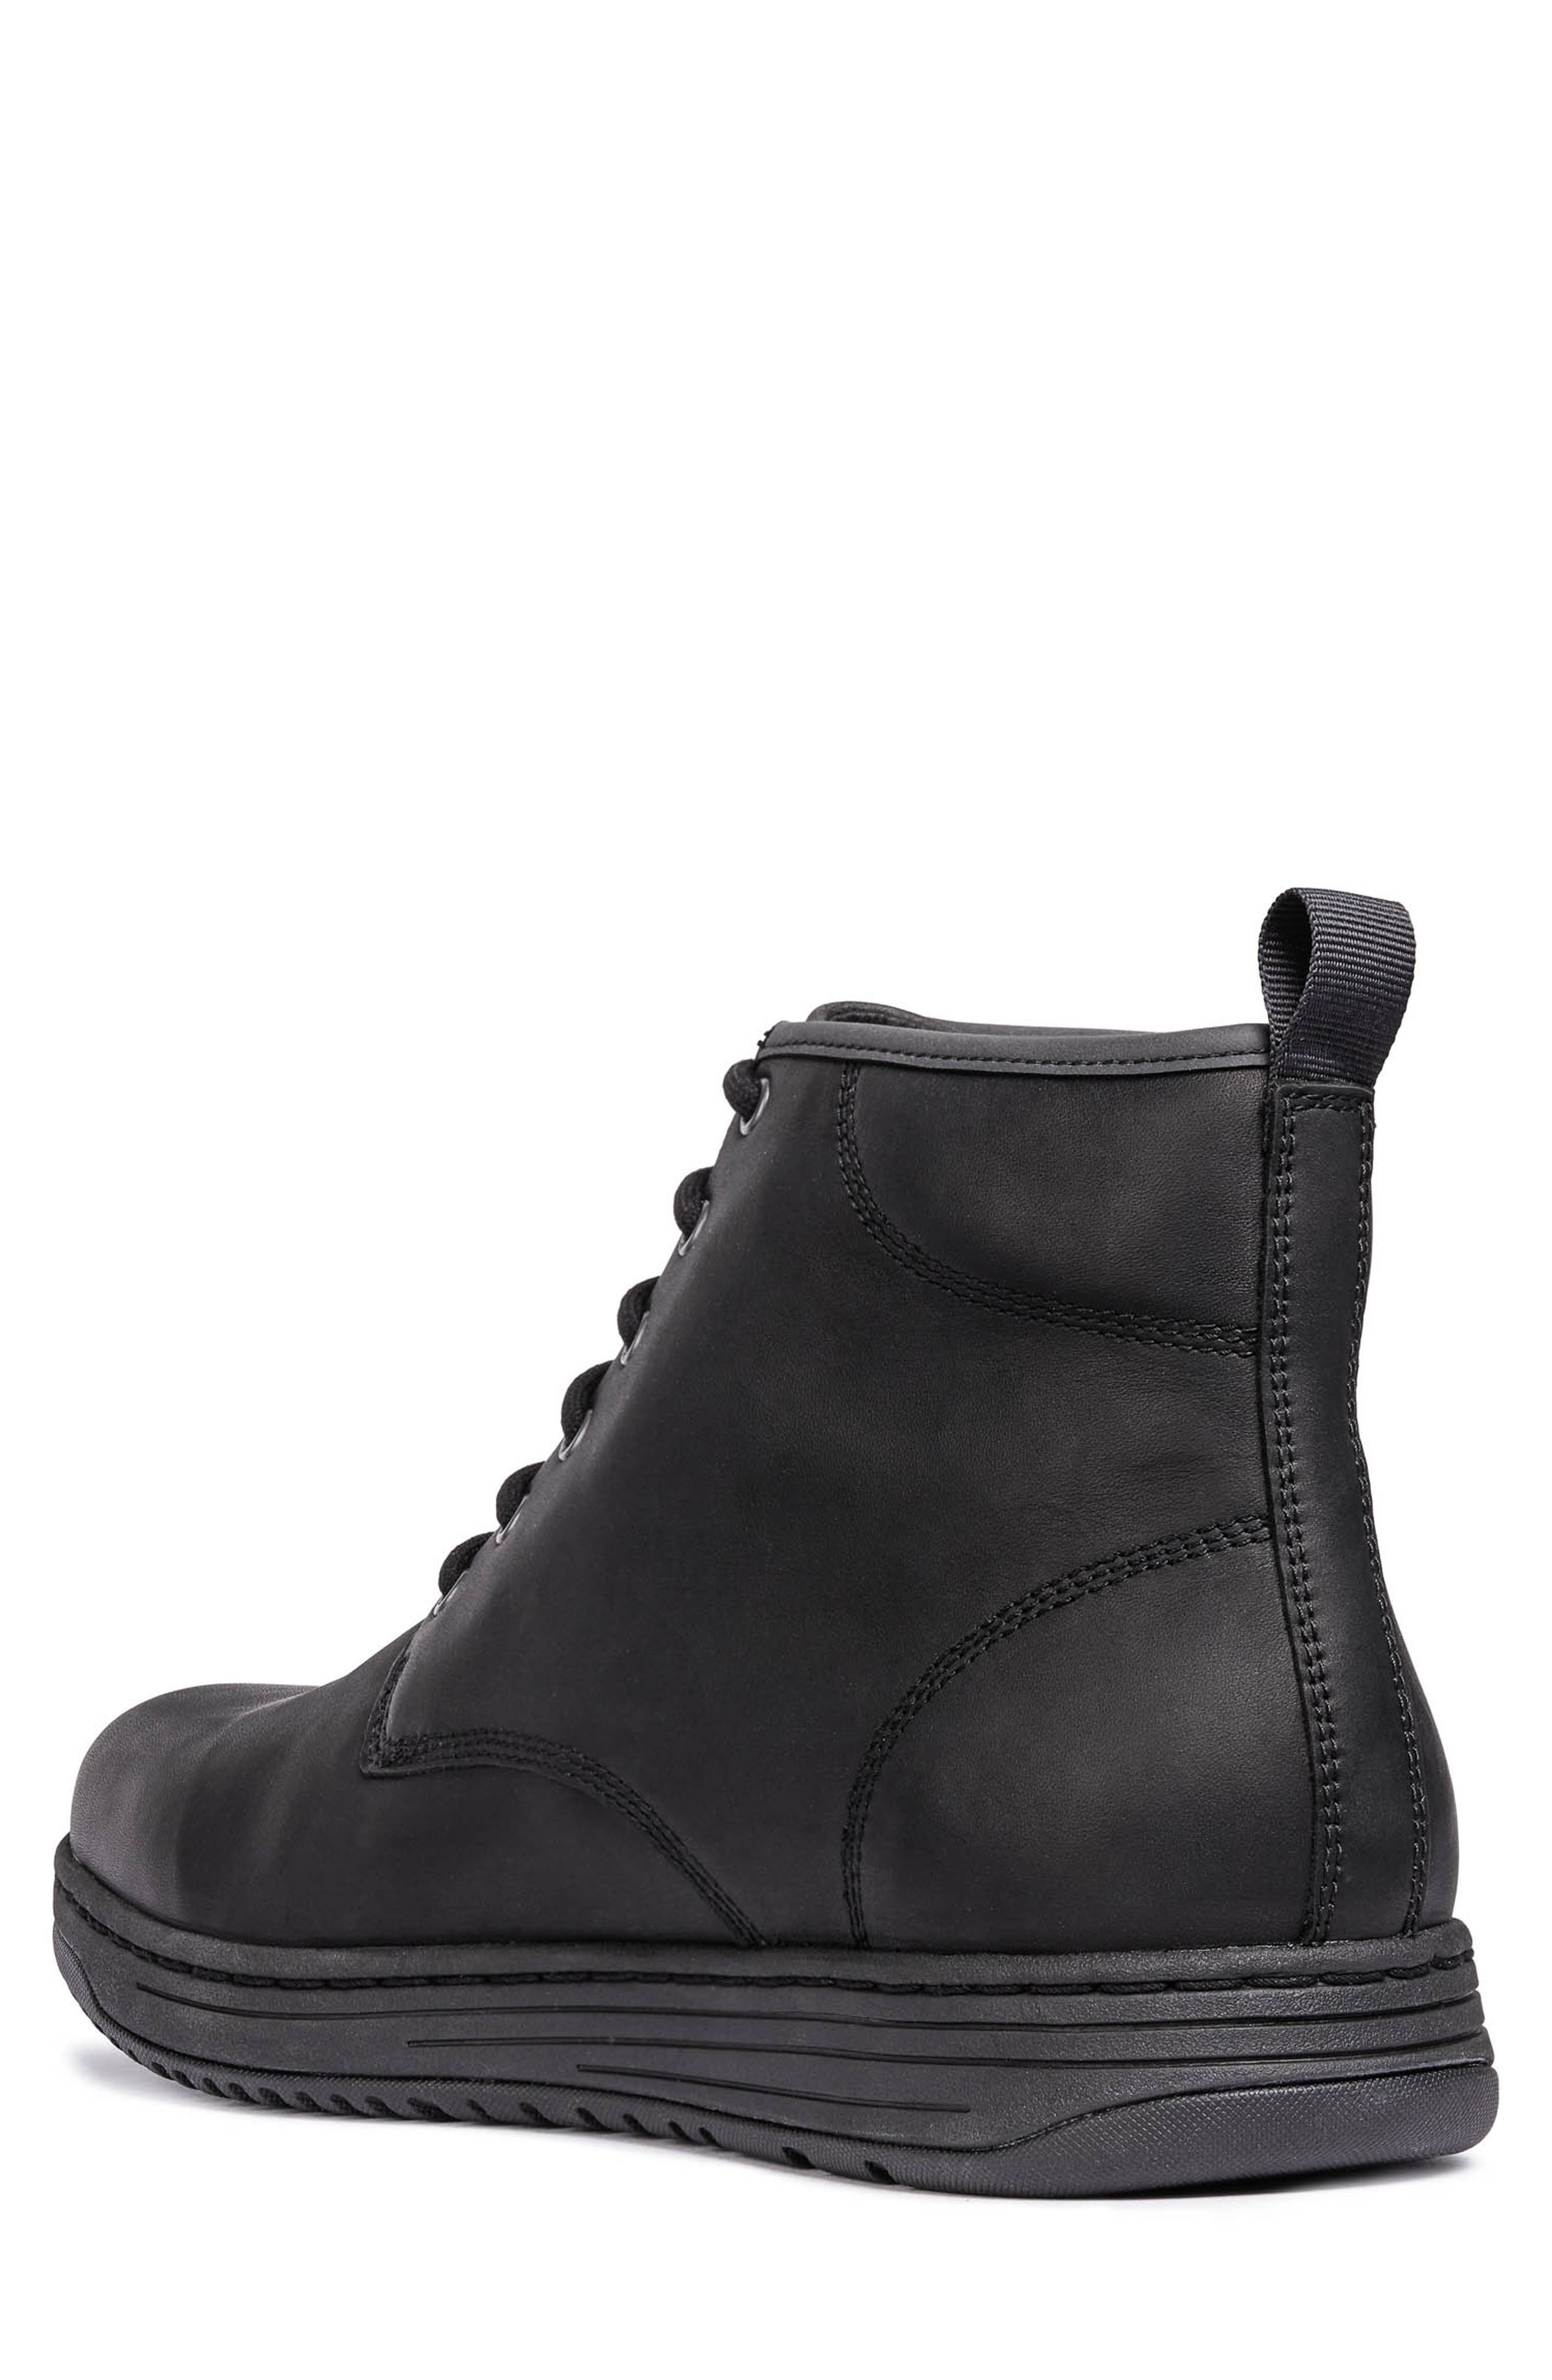 Abroad ABX 2 Tall Lace-Up Boot,                             Alternate thumbnail 2, color,                             BLACK